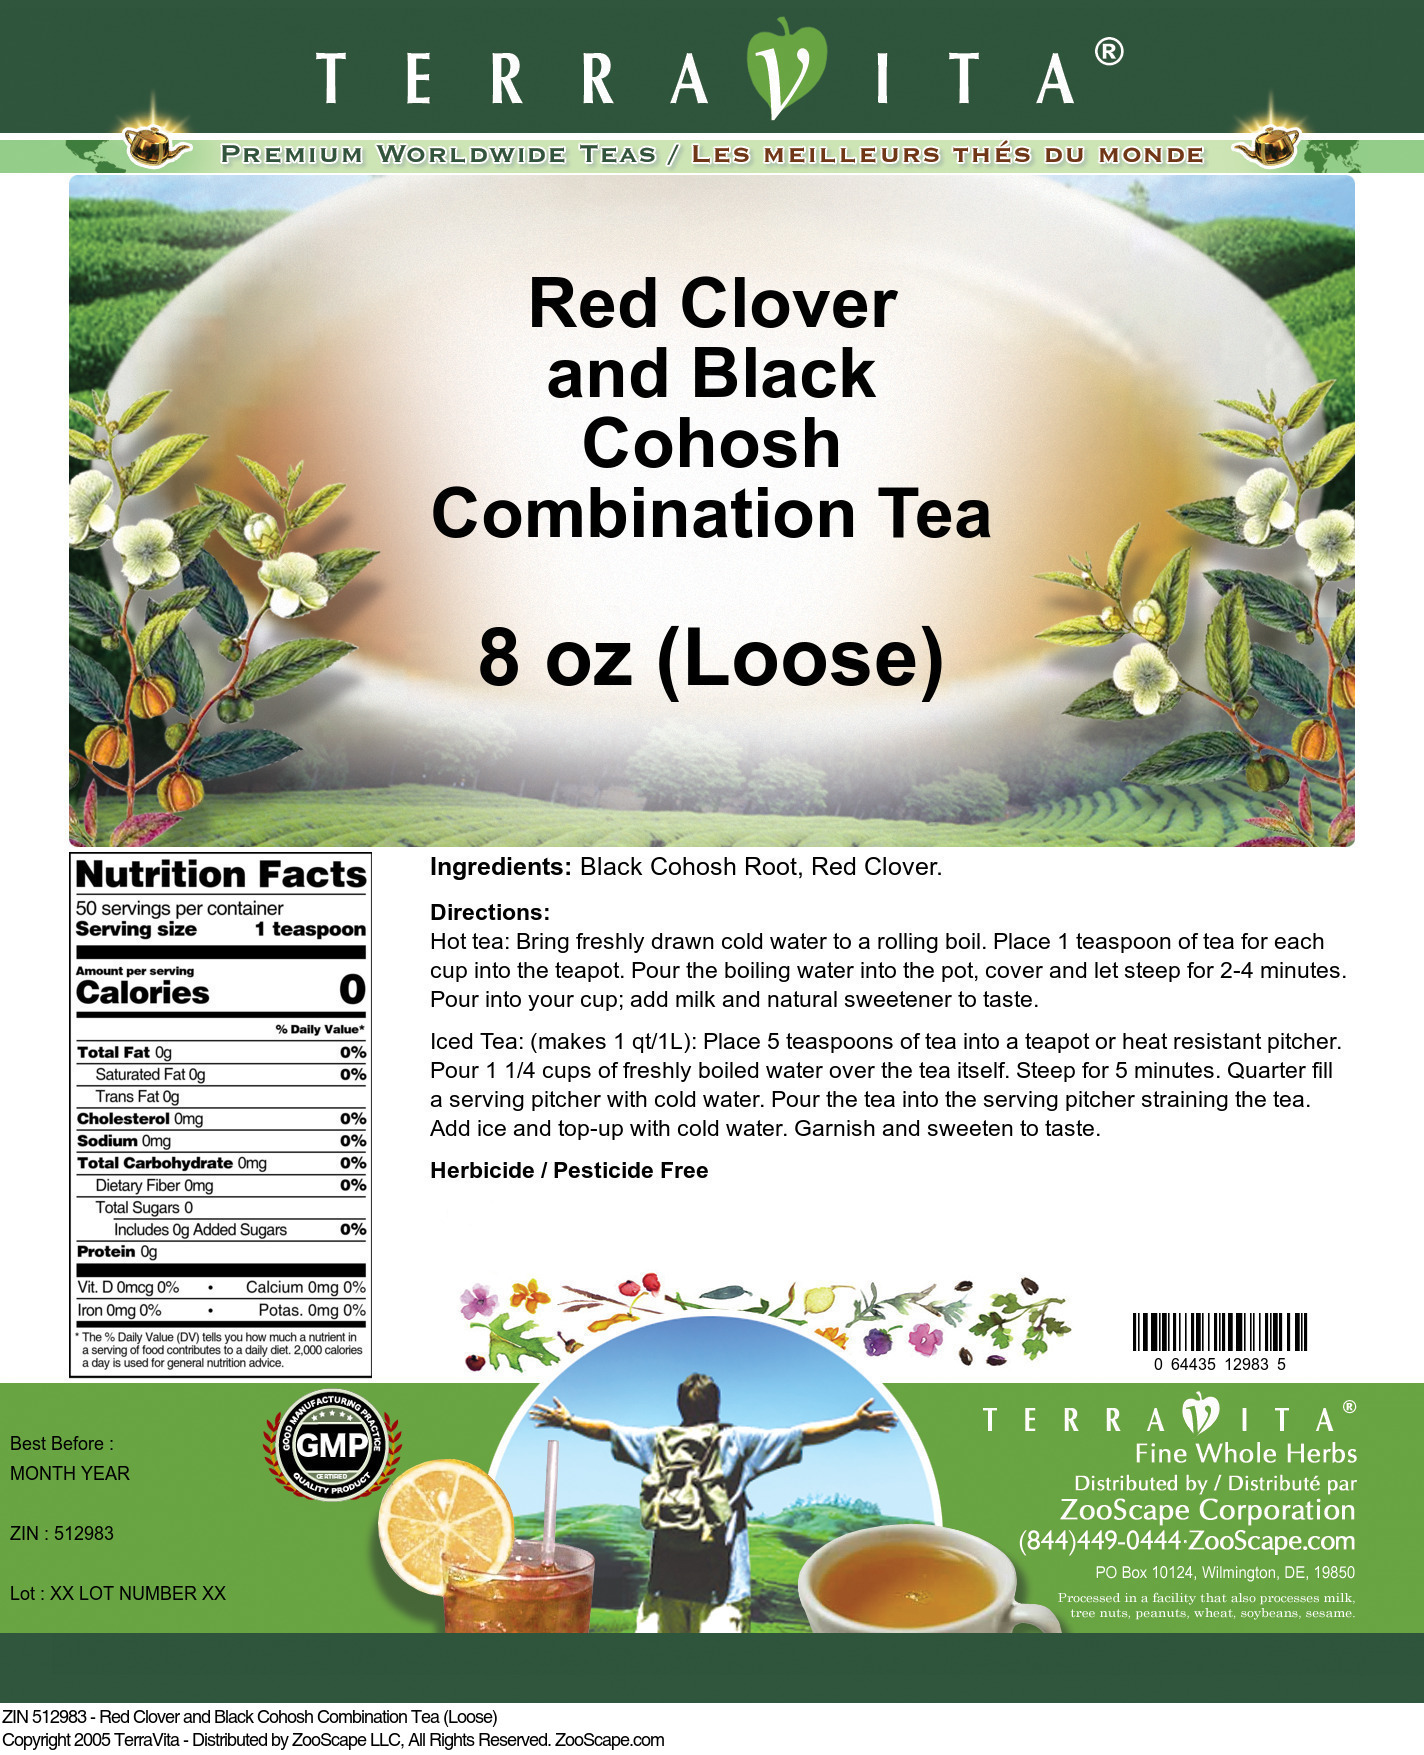 Red Clover and Black Cohosh Combination Tea (Loose)